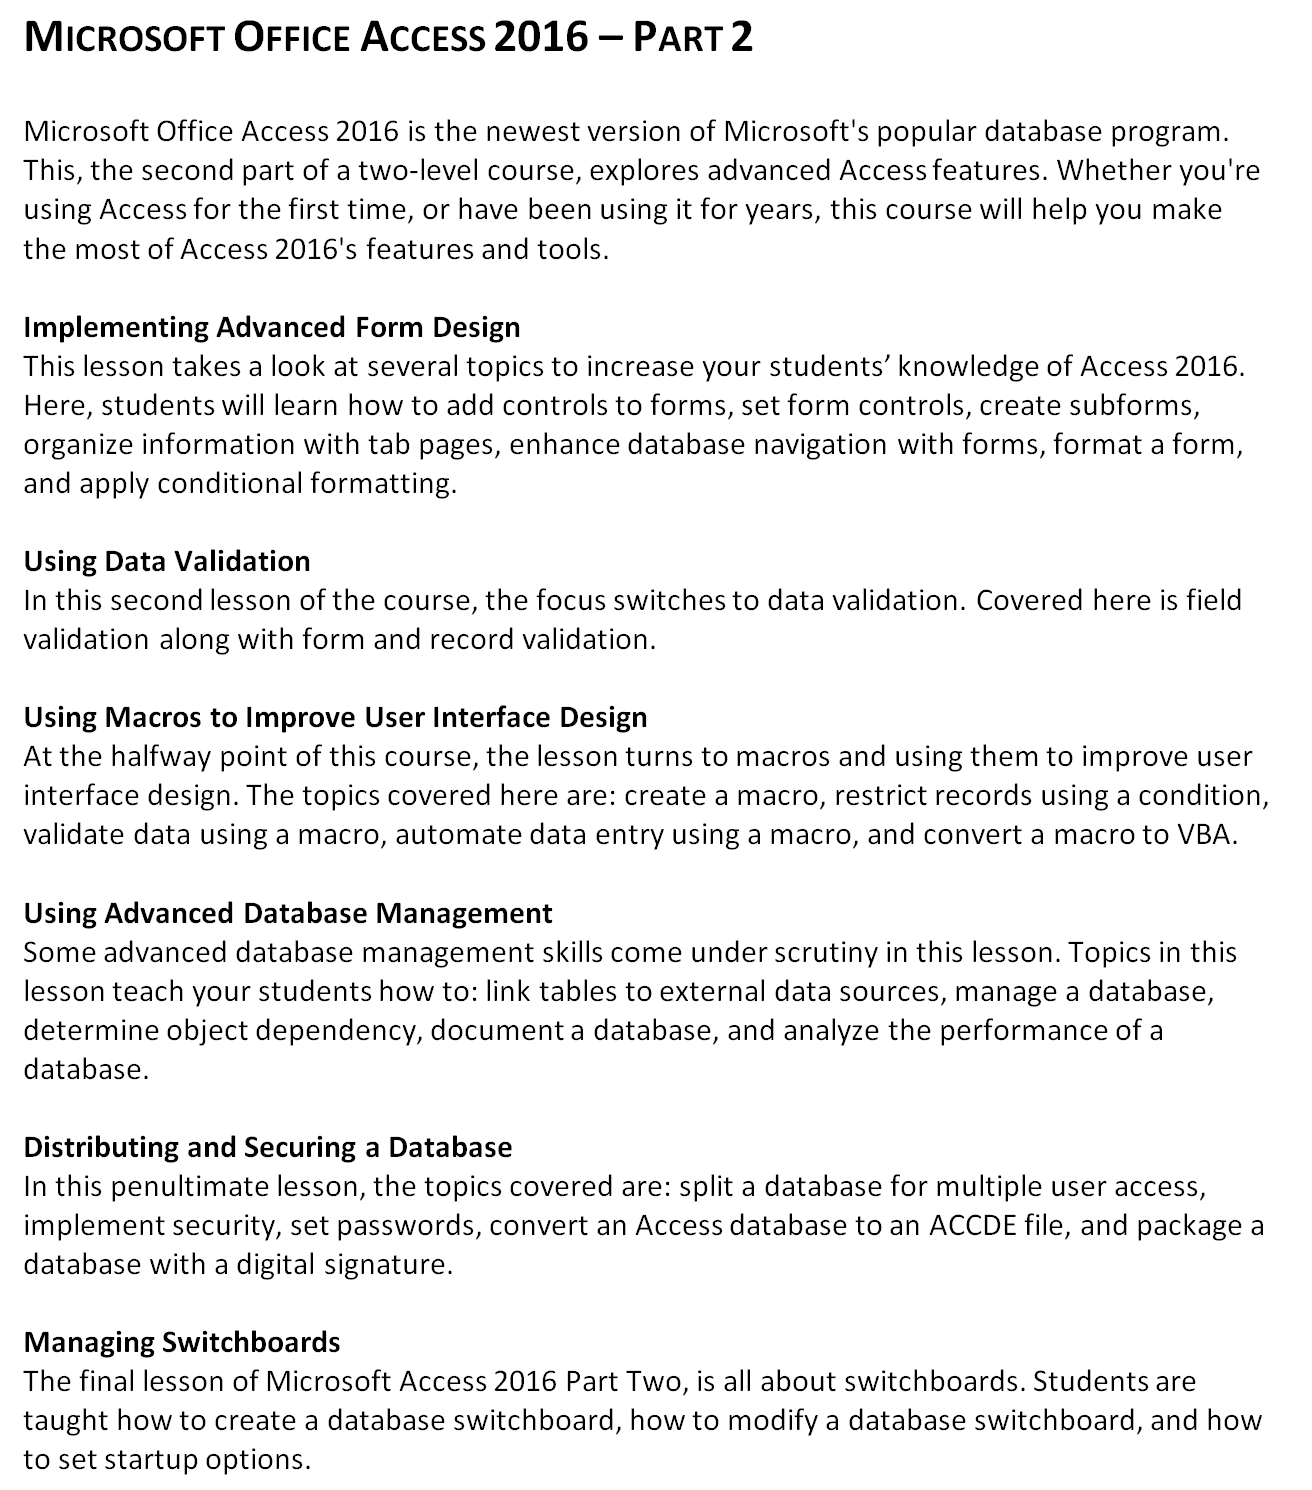 Mouse Training London Ltd: Microsoft Office - Access 2016